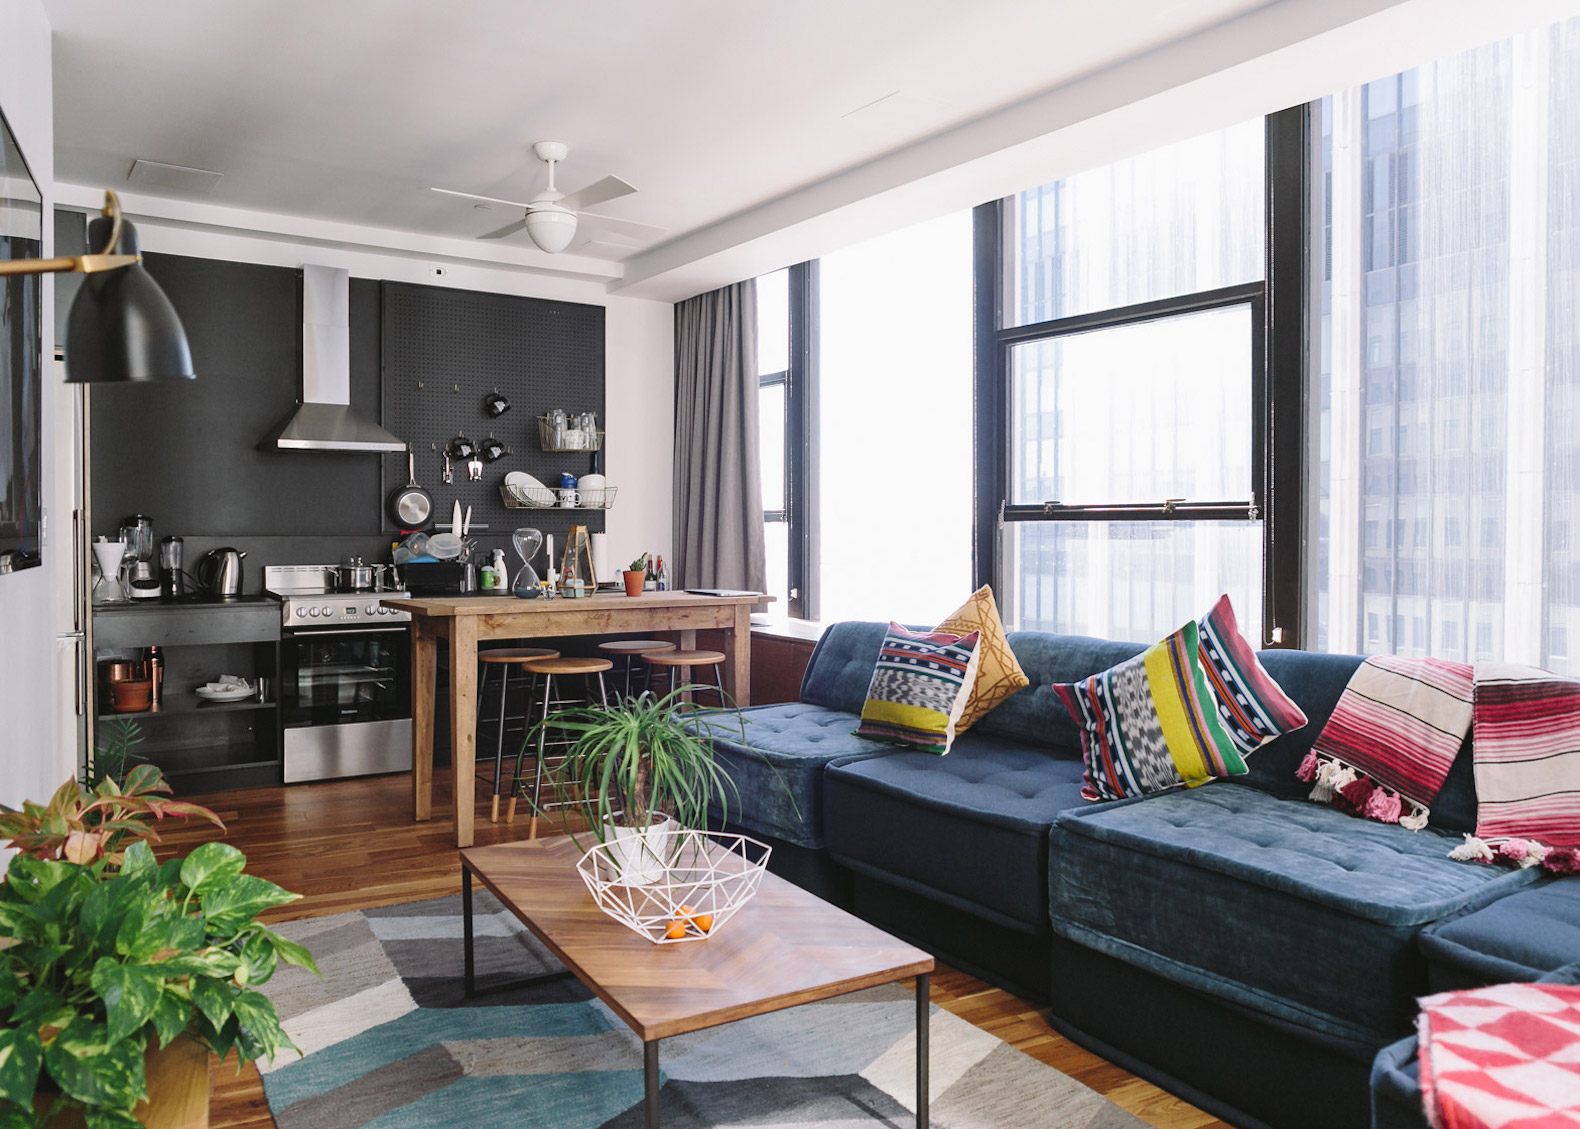 WeLive opens doors to gorgeous coliving apartments of the